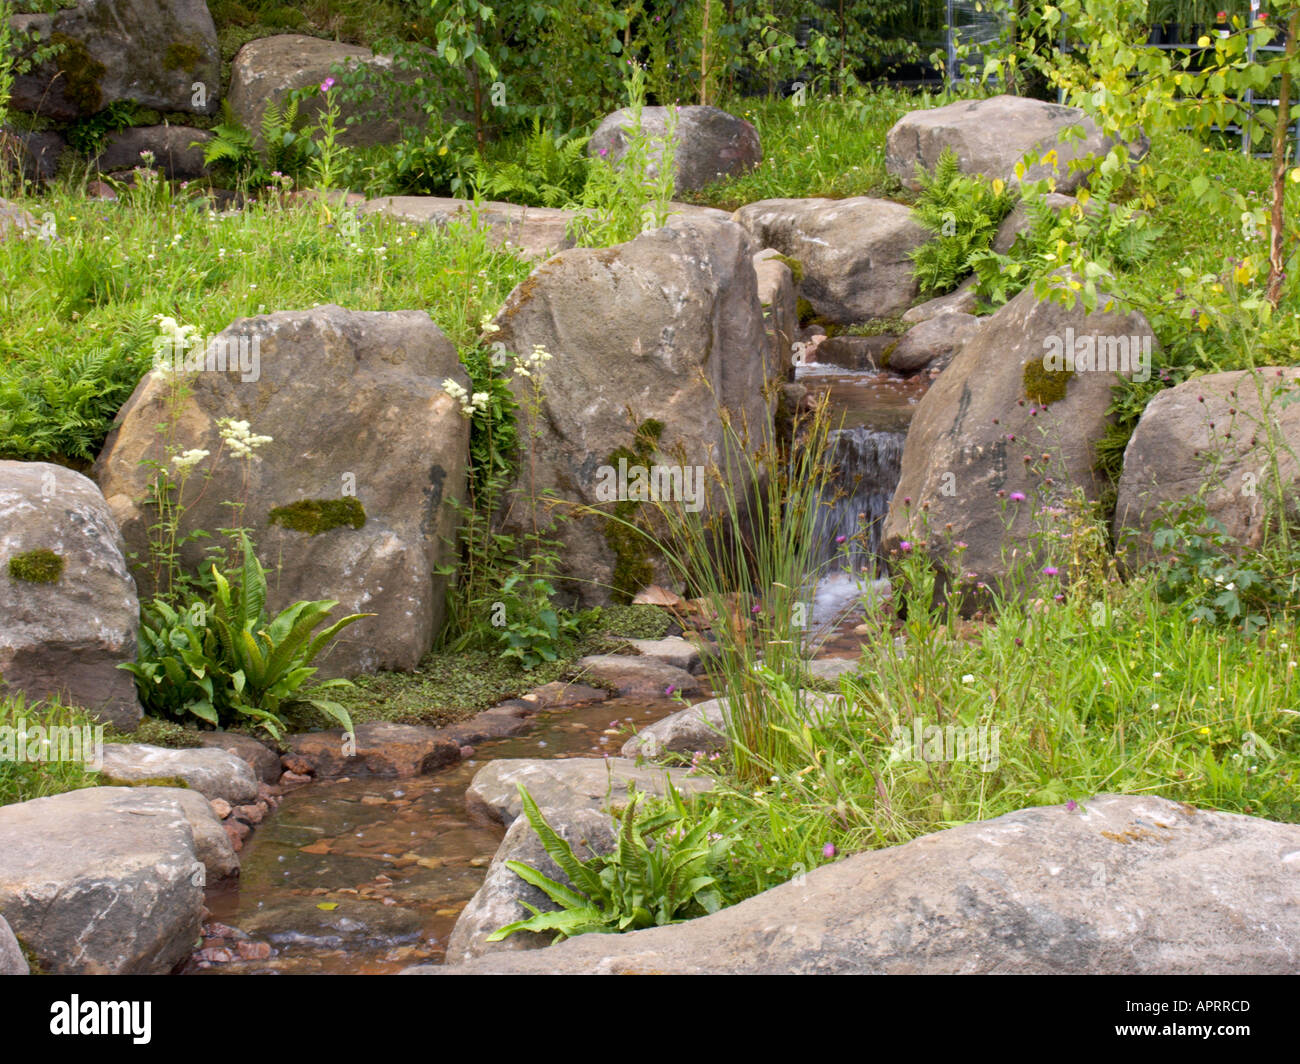 Stock Photo   Tatton Flower Show Waterfall Running Through Boulder Garden  With Natural Planting